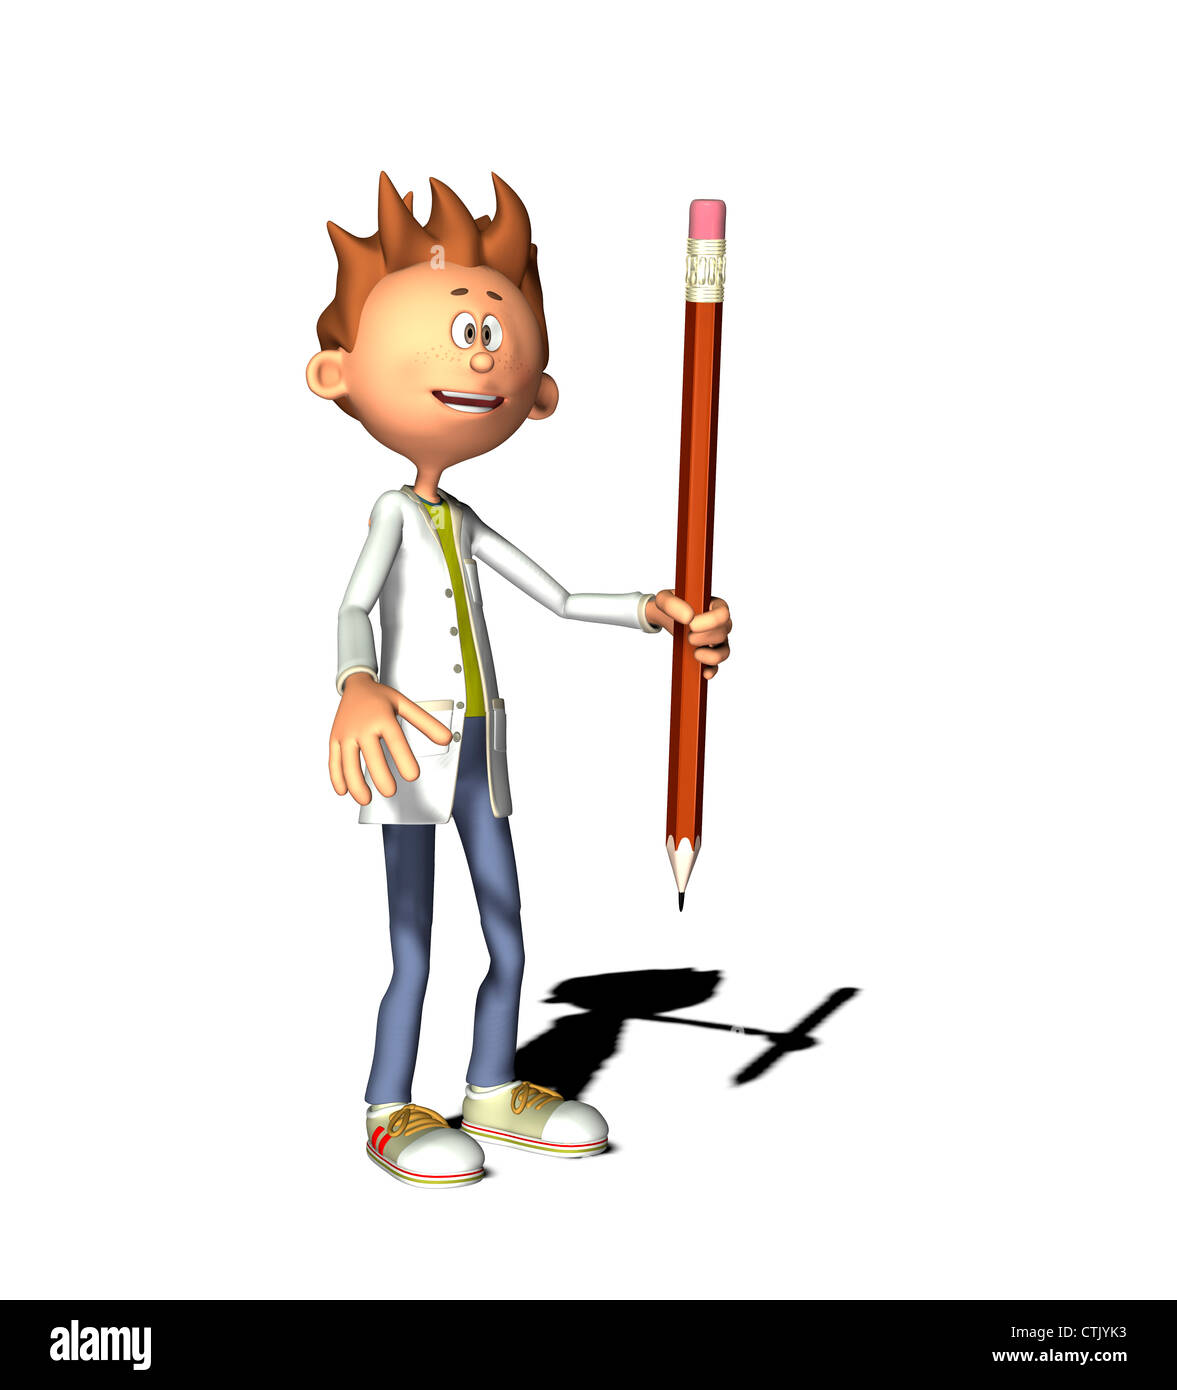 cartoon figure with lab coat and pen - Stock Image